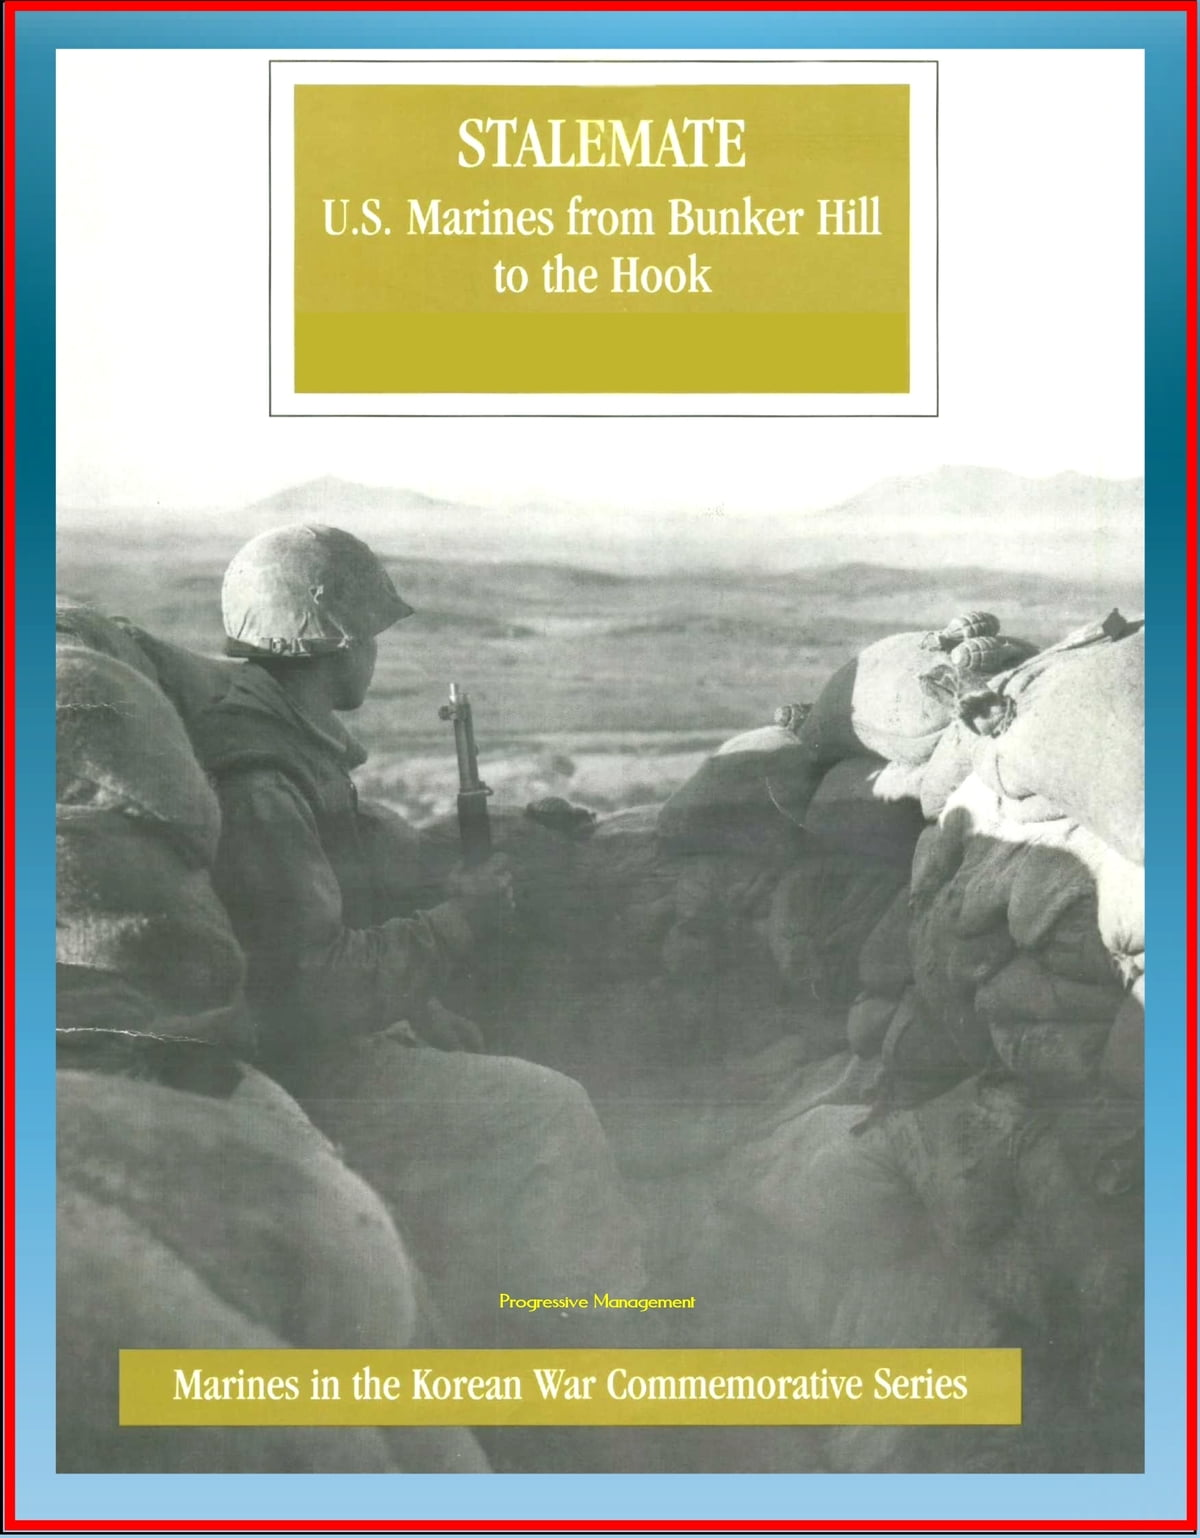 Marines in the Korean War Commemorative Series: Stalemate, U S  Marines  from Bunker Hill to the Hook, 1st Marine Division, Imjin River, Kimpo